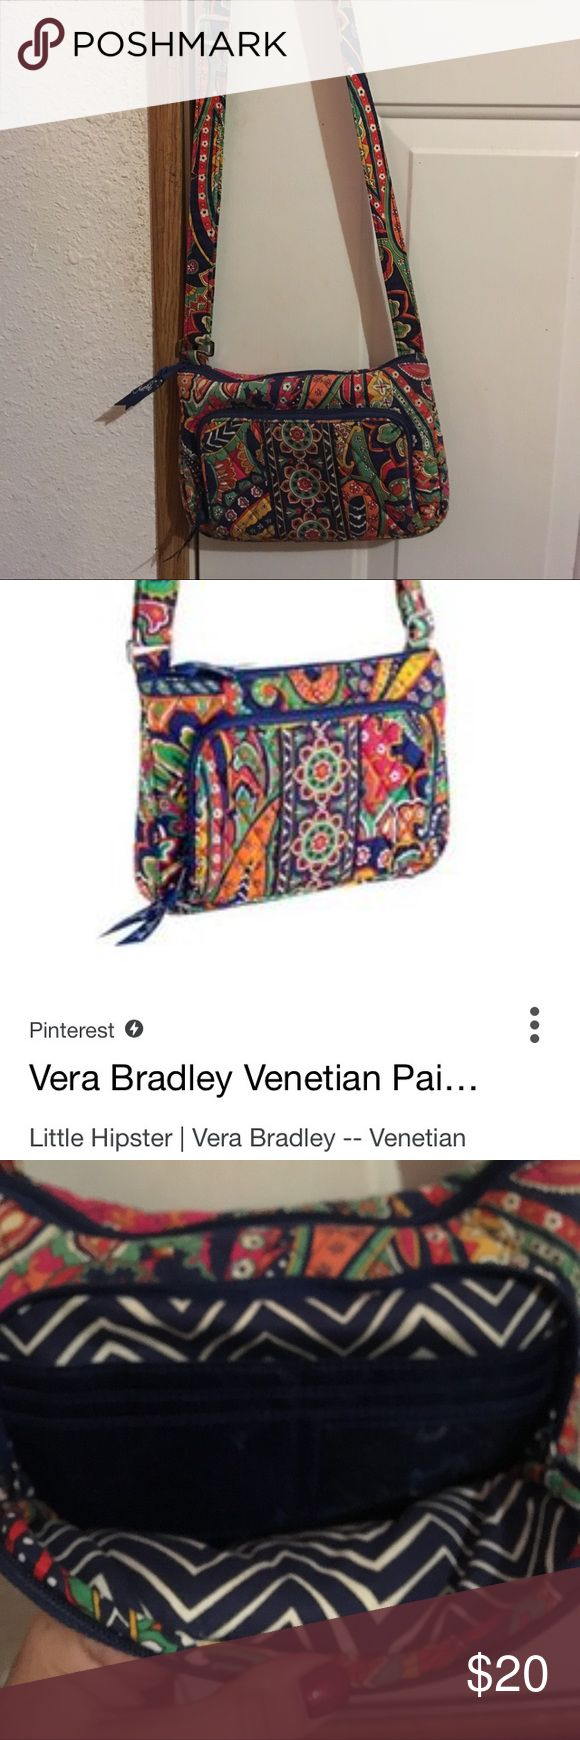 Vera Bradley //SALE FRIDAY AND SATURDAY ONLY!! Vera Bradley Venetian paisley little hipster in awesome condition has been used but very little! Vera Bradley Bags Crossbody Bags